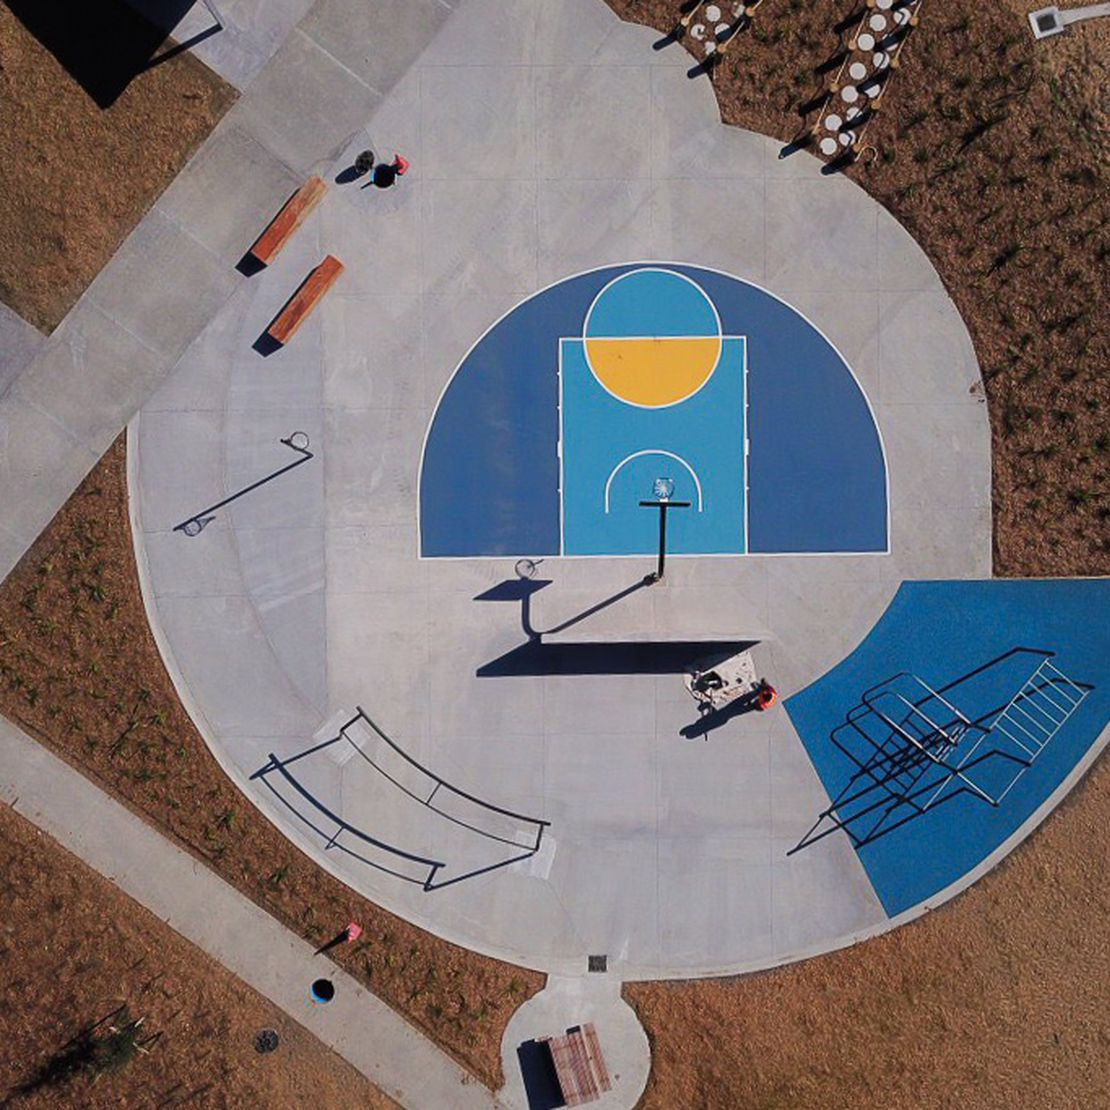 Bonair Basketball D Court